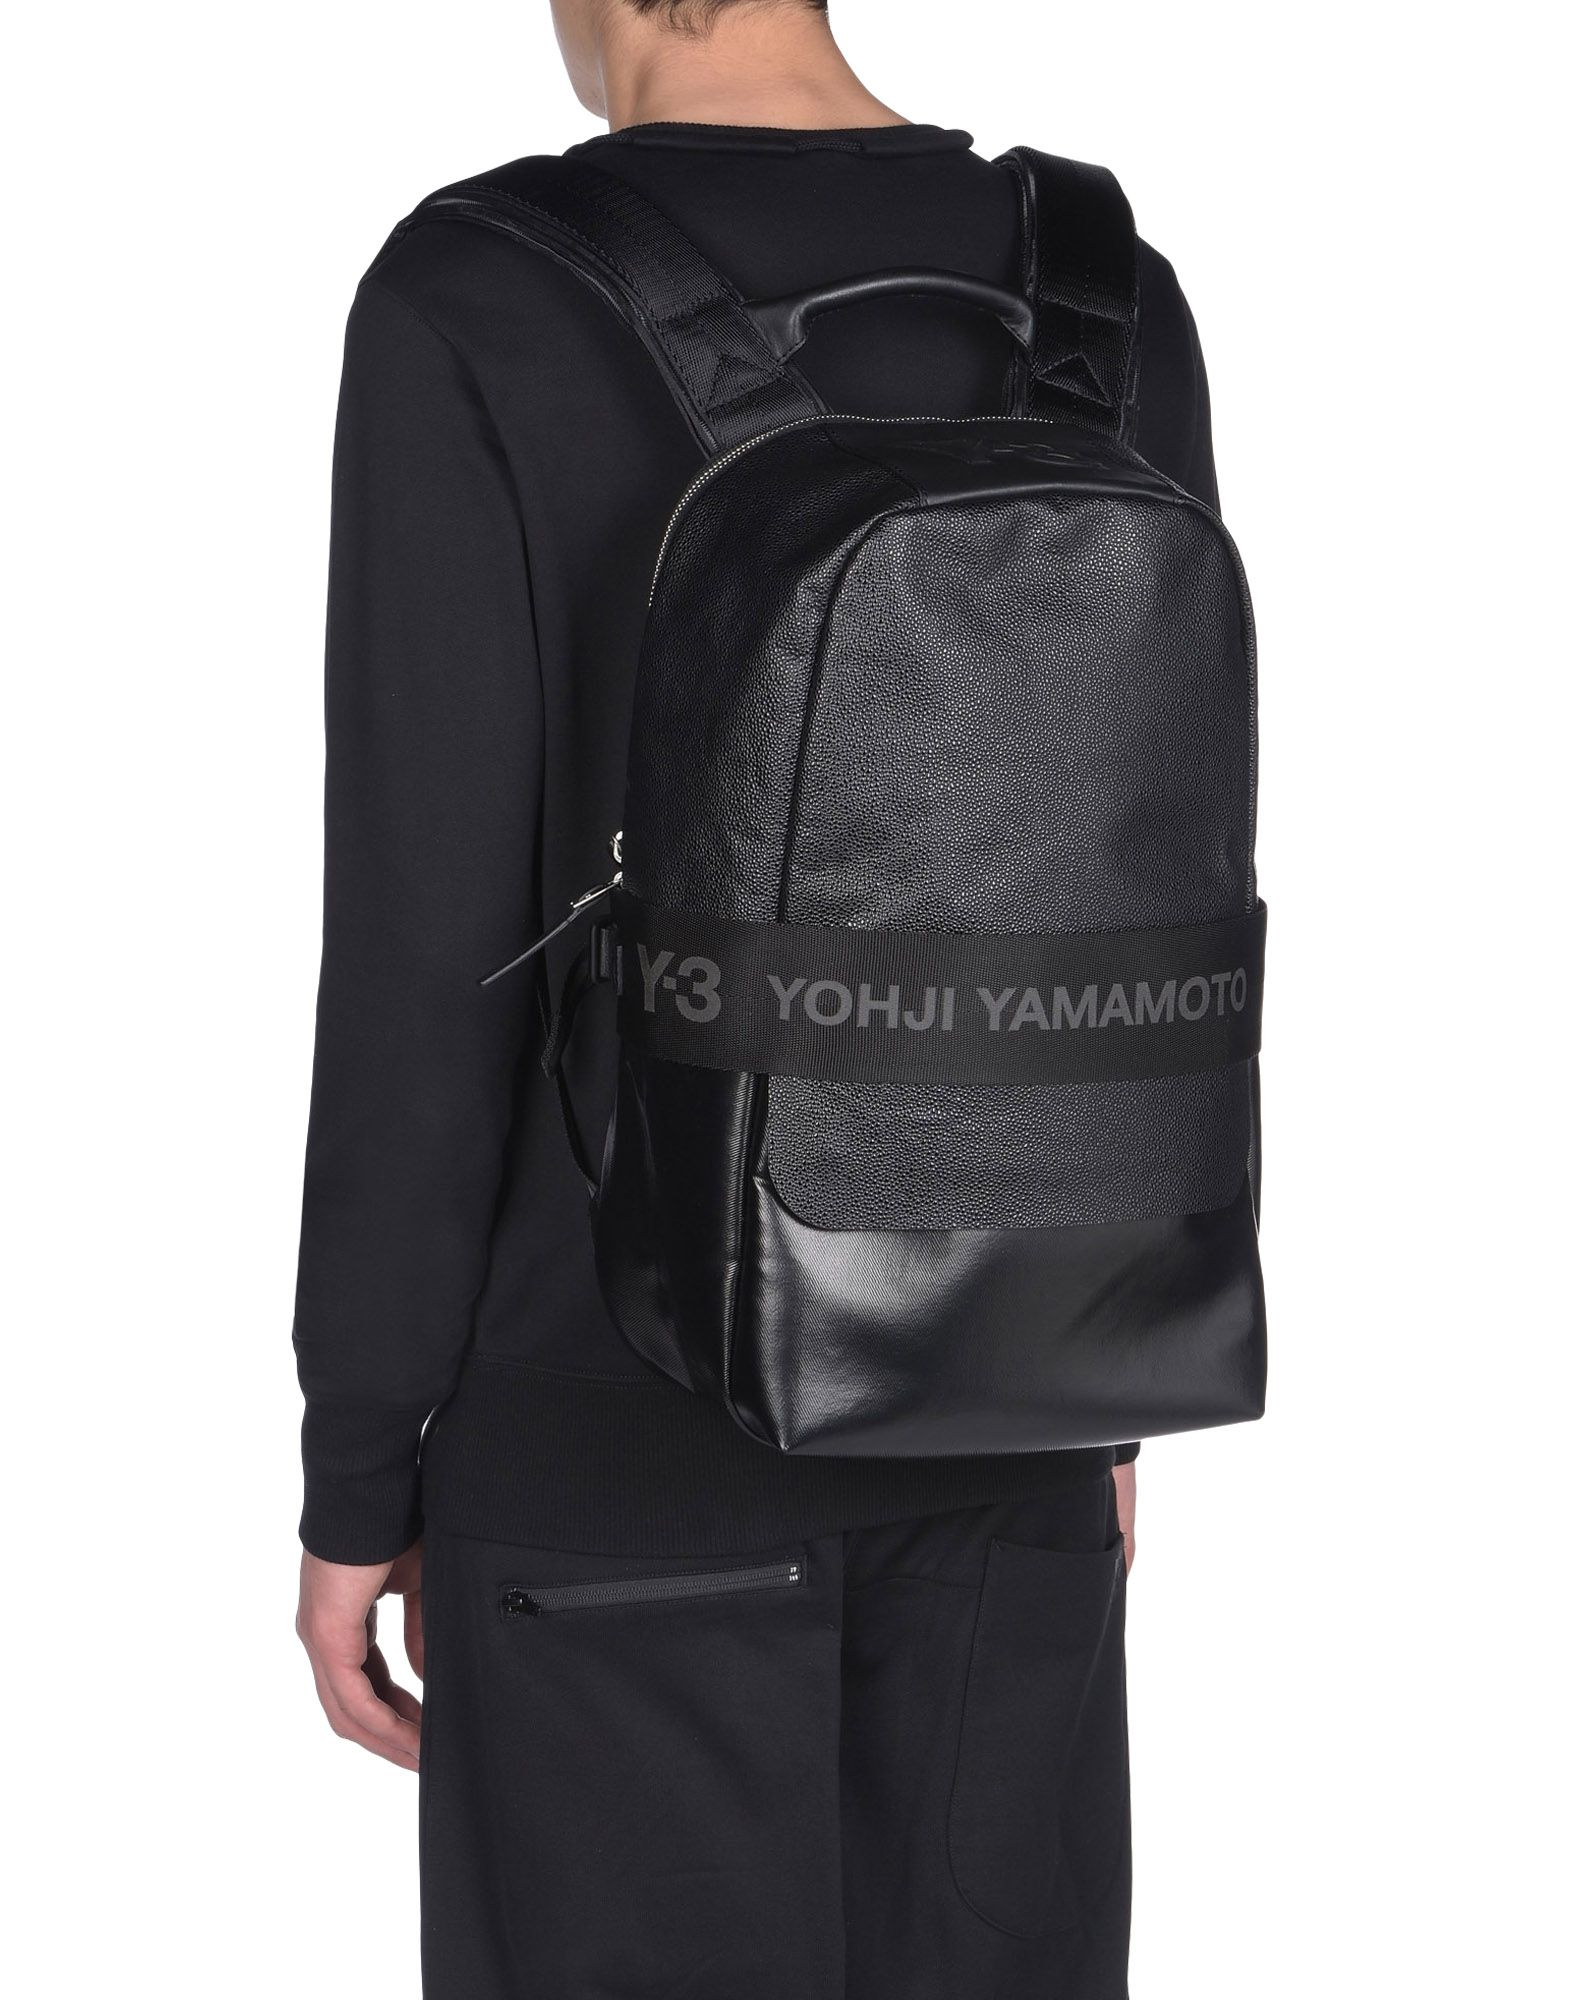 Y 3 QASA LEATHER BACKPACK Backpacks for Women | Adidas Y-3 ...